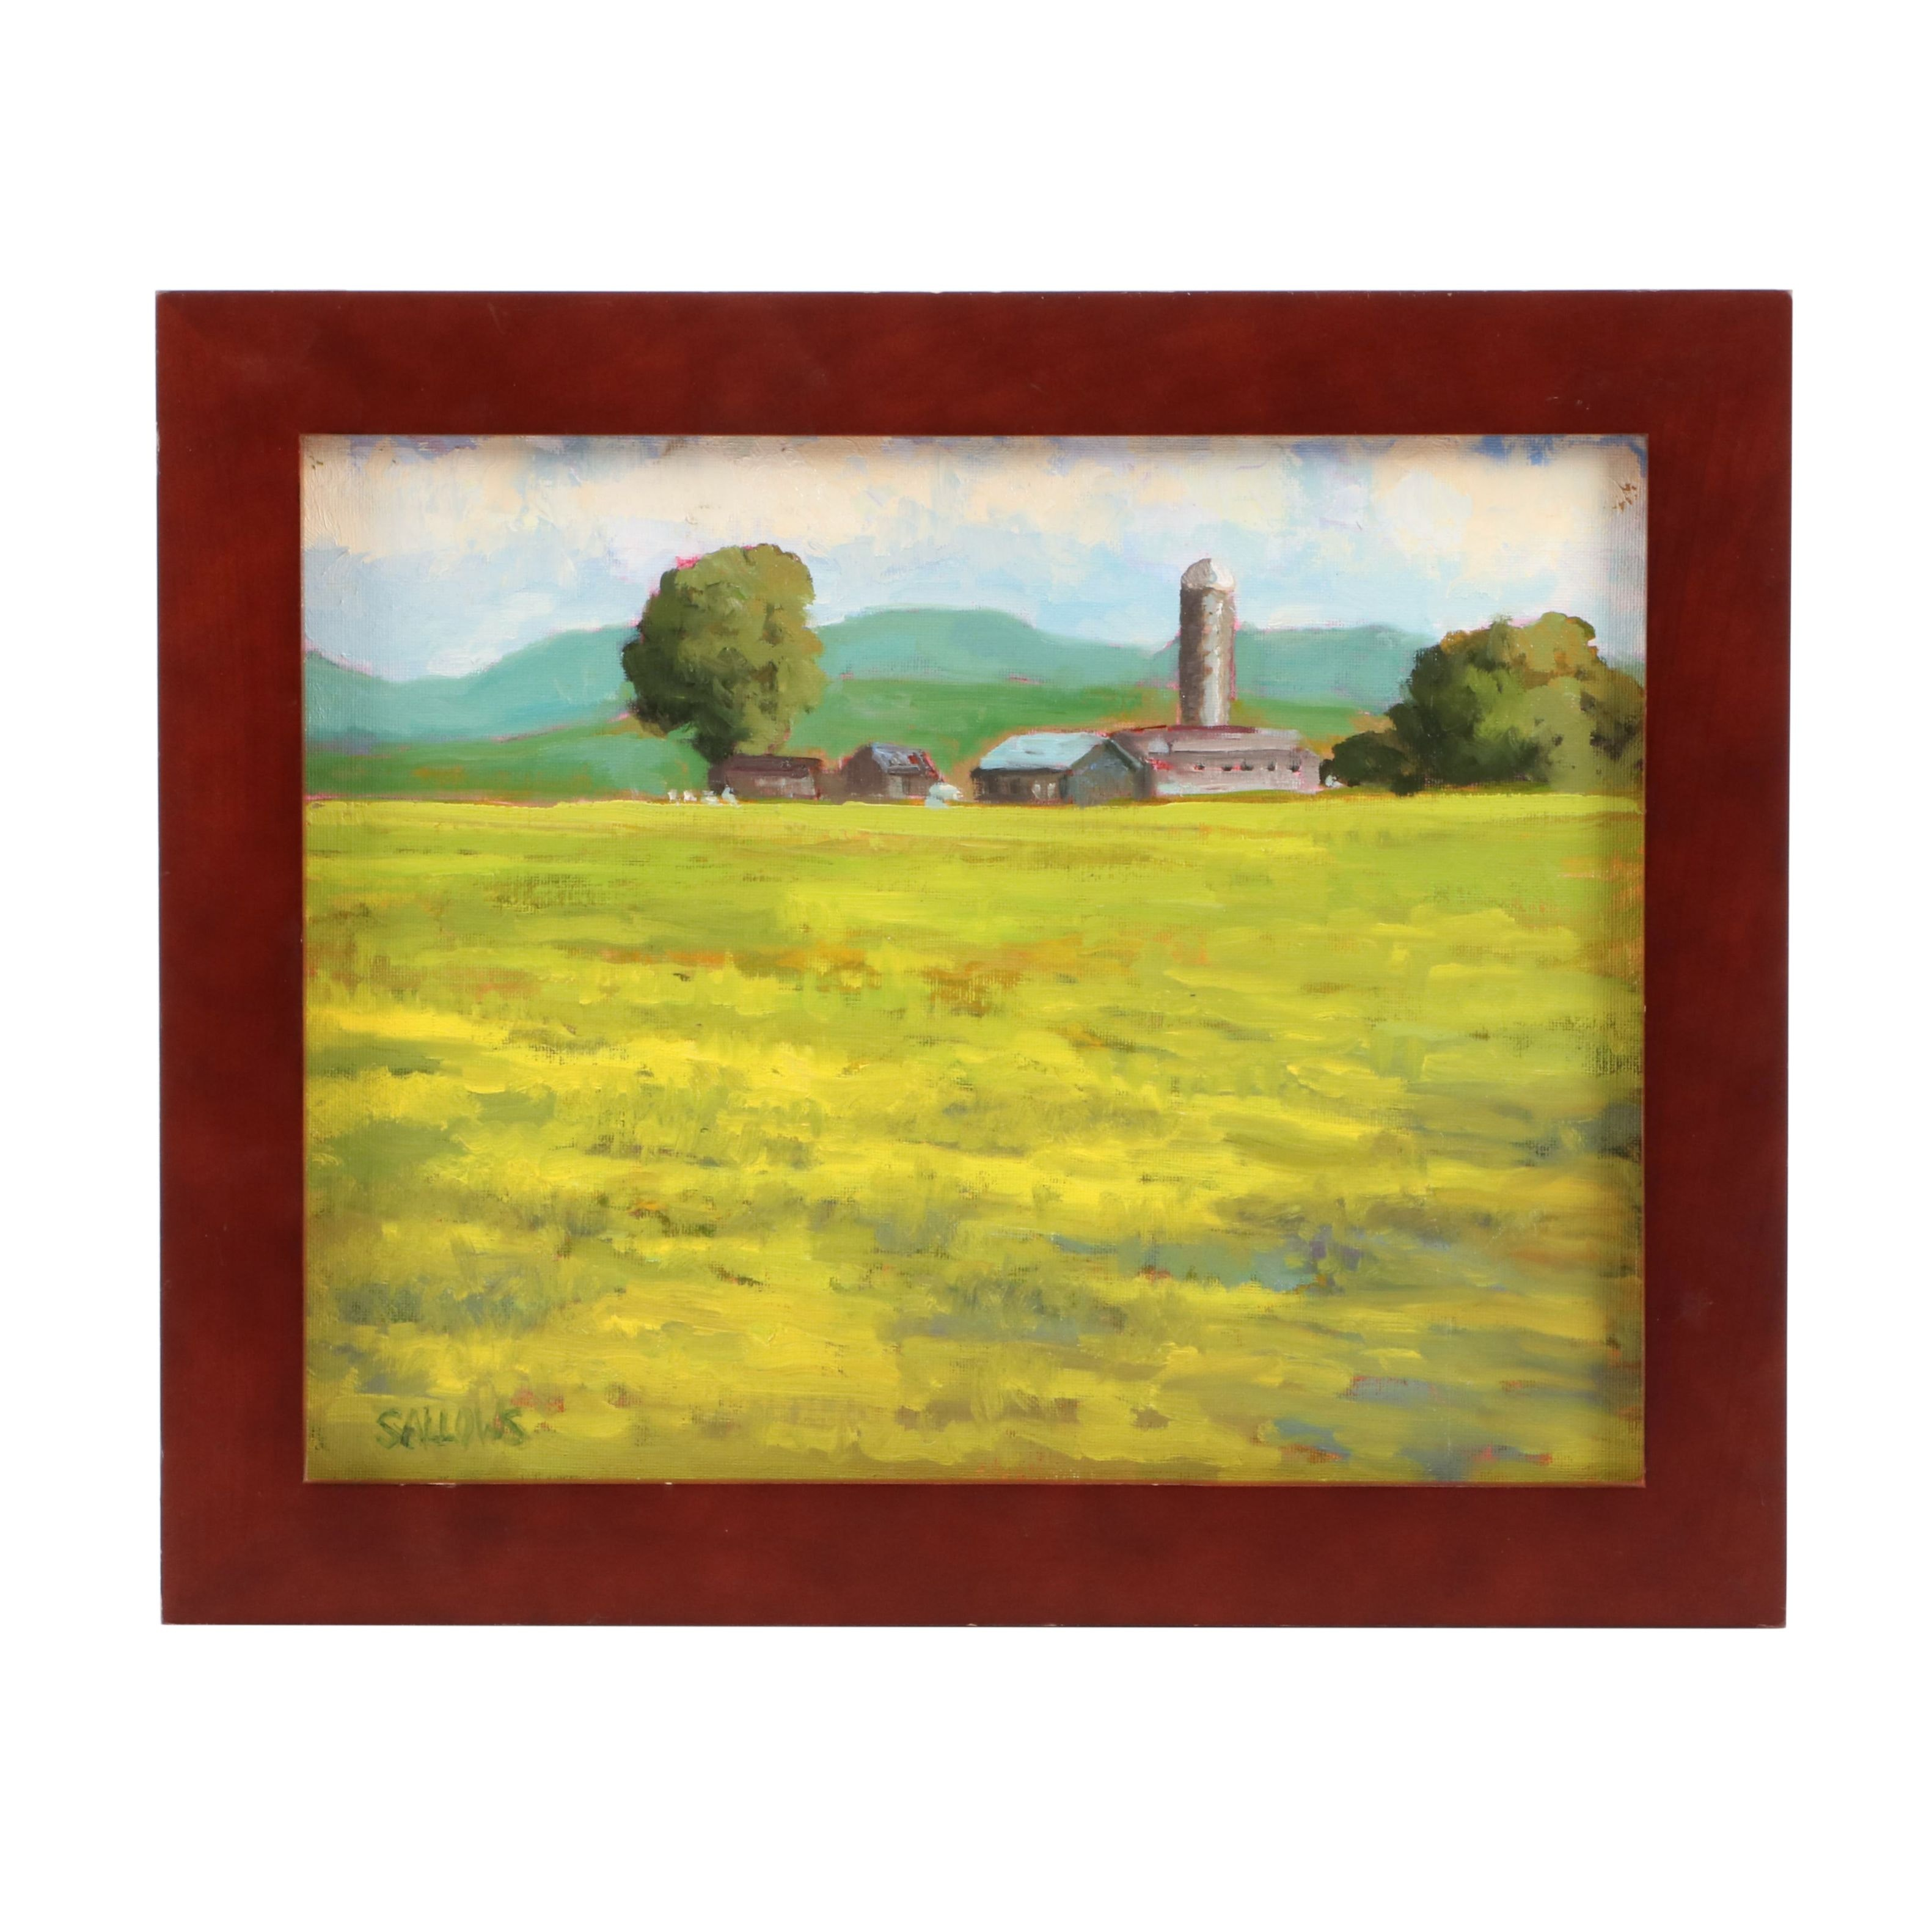 Nora Sallows Oil Painting of Pastoral Landscape